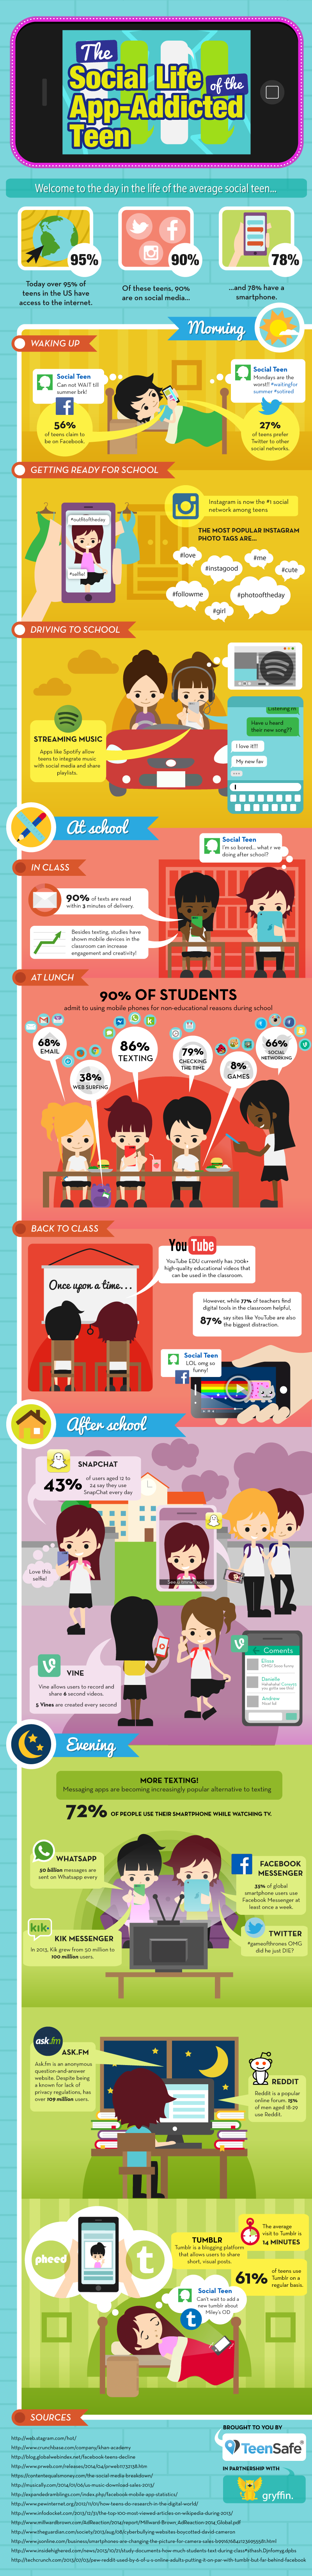 A Day In The Life Of The Average Social Media Teen - #infographic #socialmedia